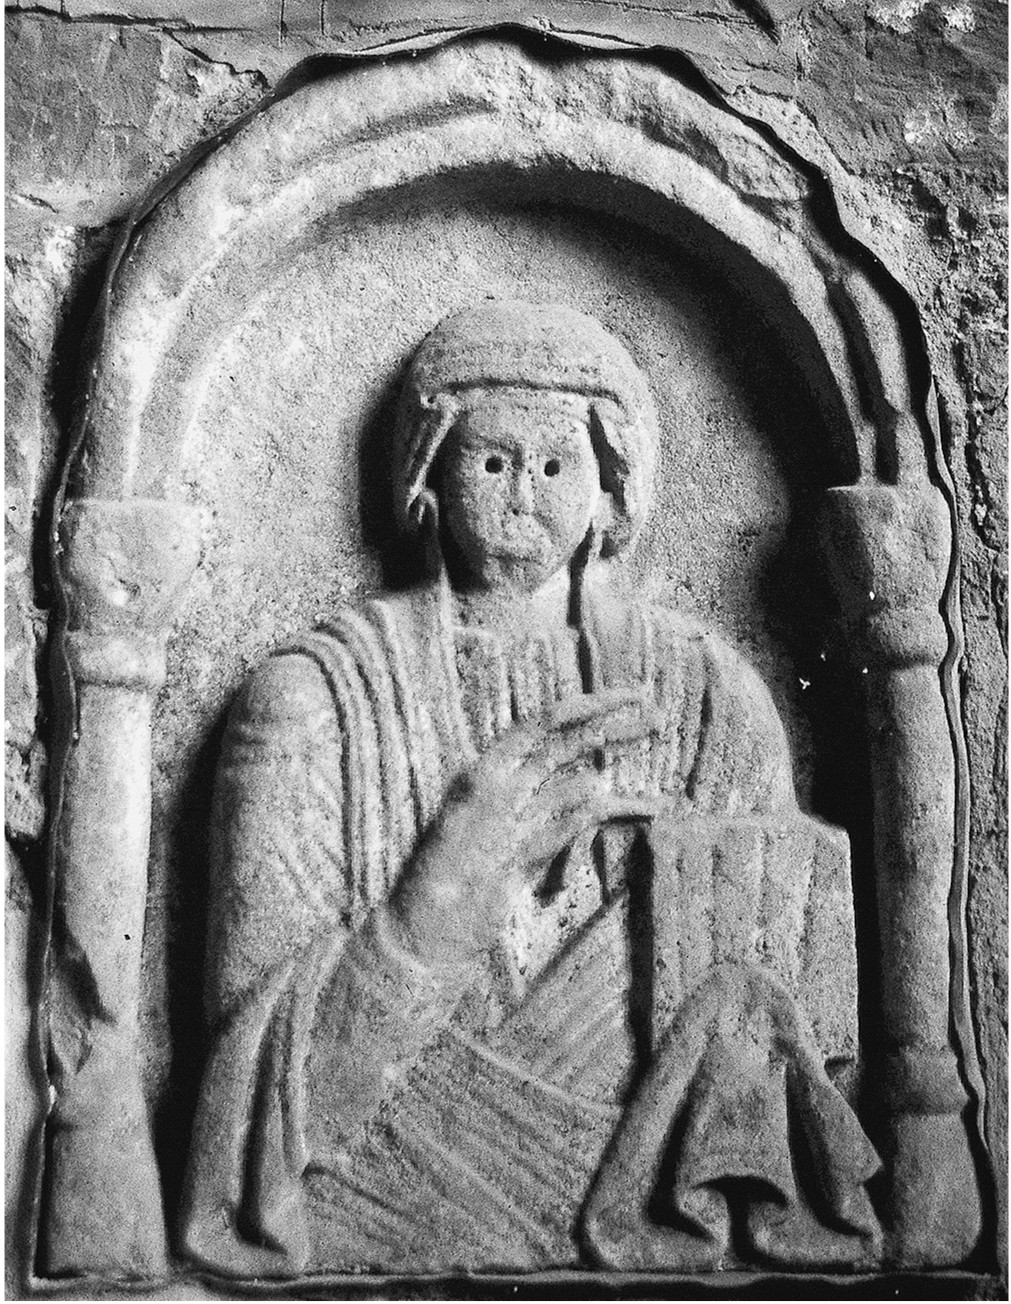 A black and white photograph of a carving of a person in a stone alcove. The figure is robed and holds an object, possibly tablet or book, in their left hand.